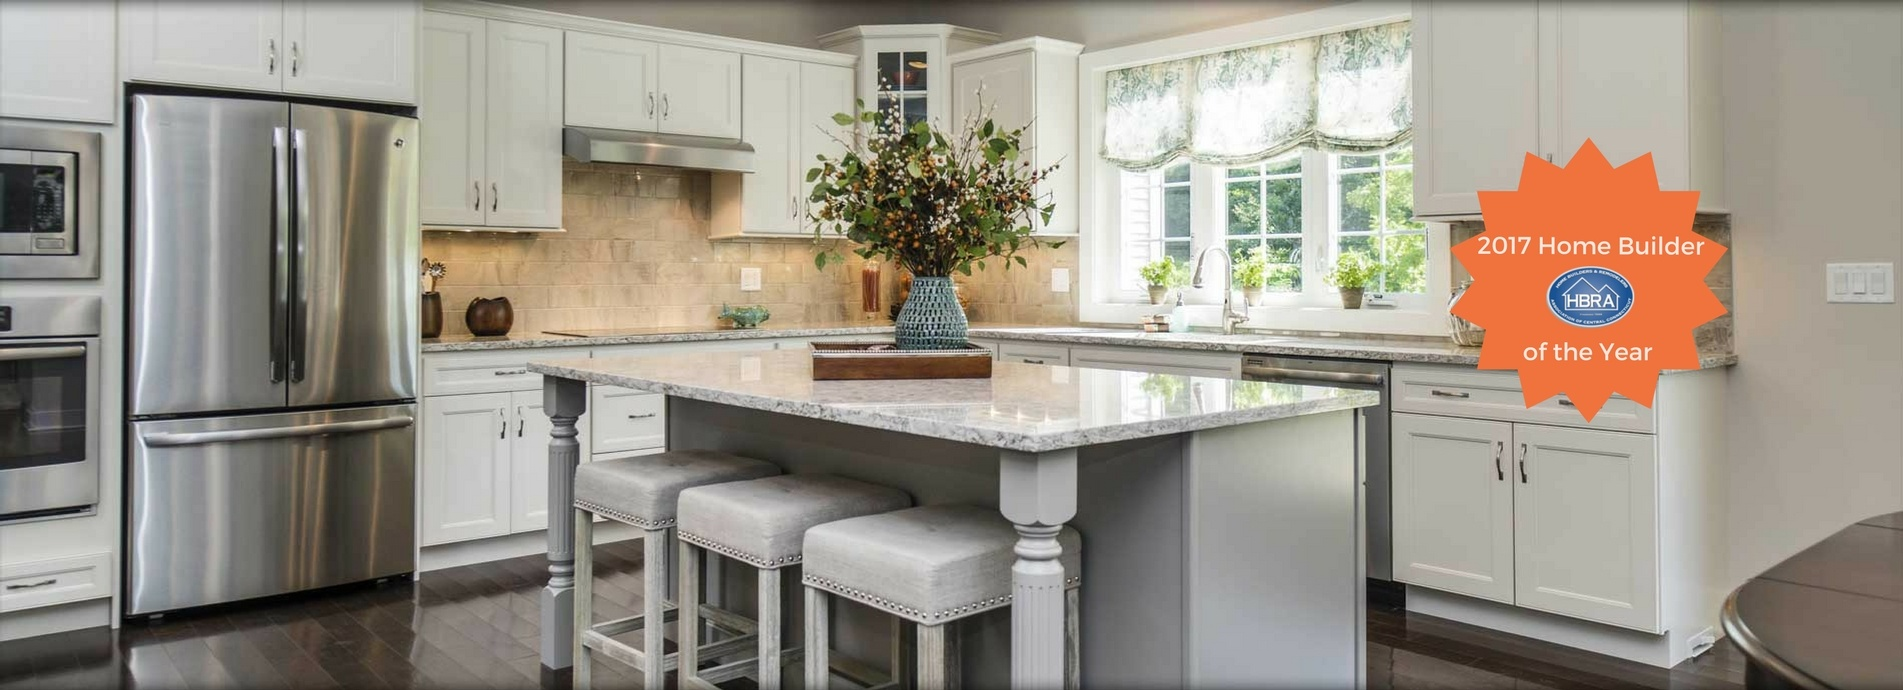 2017-home-builder-of-the-year-3.jpg